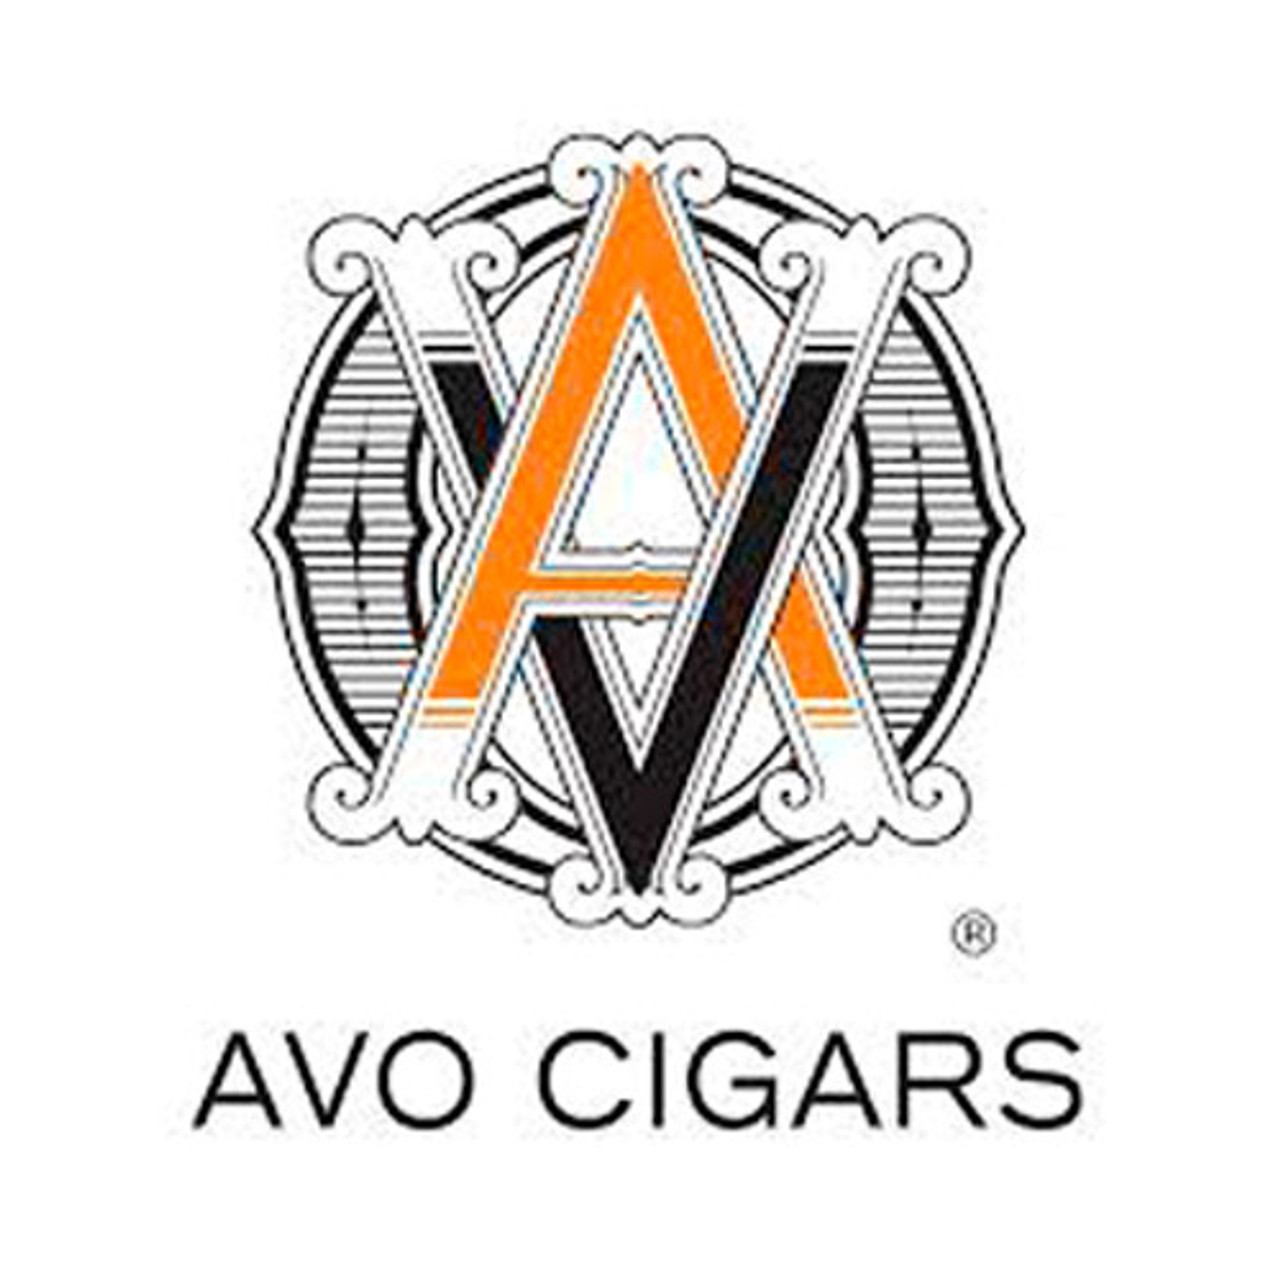 AVO Classic Piramides Cigars - 7 x 54 (Box of 20)